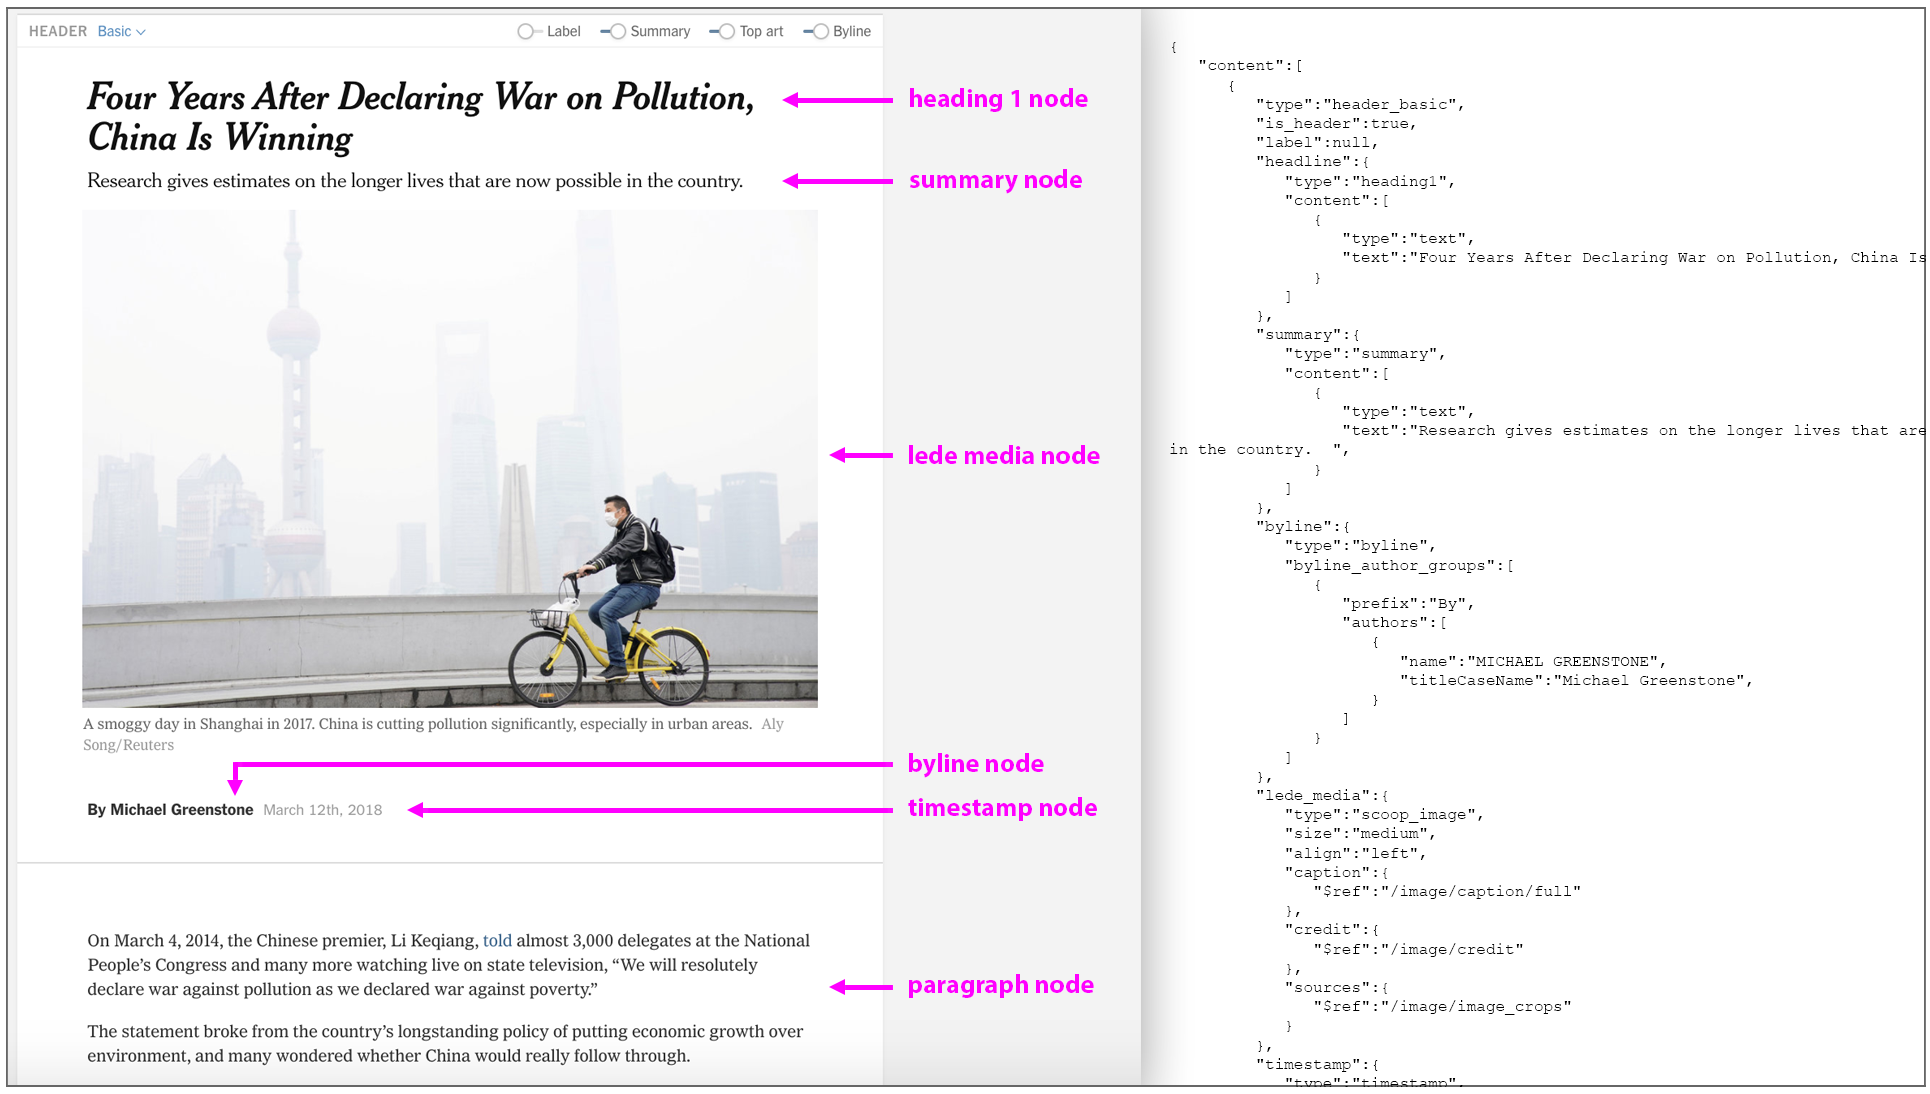 Building a Text Editor for a Digital-First Newsroom